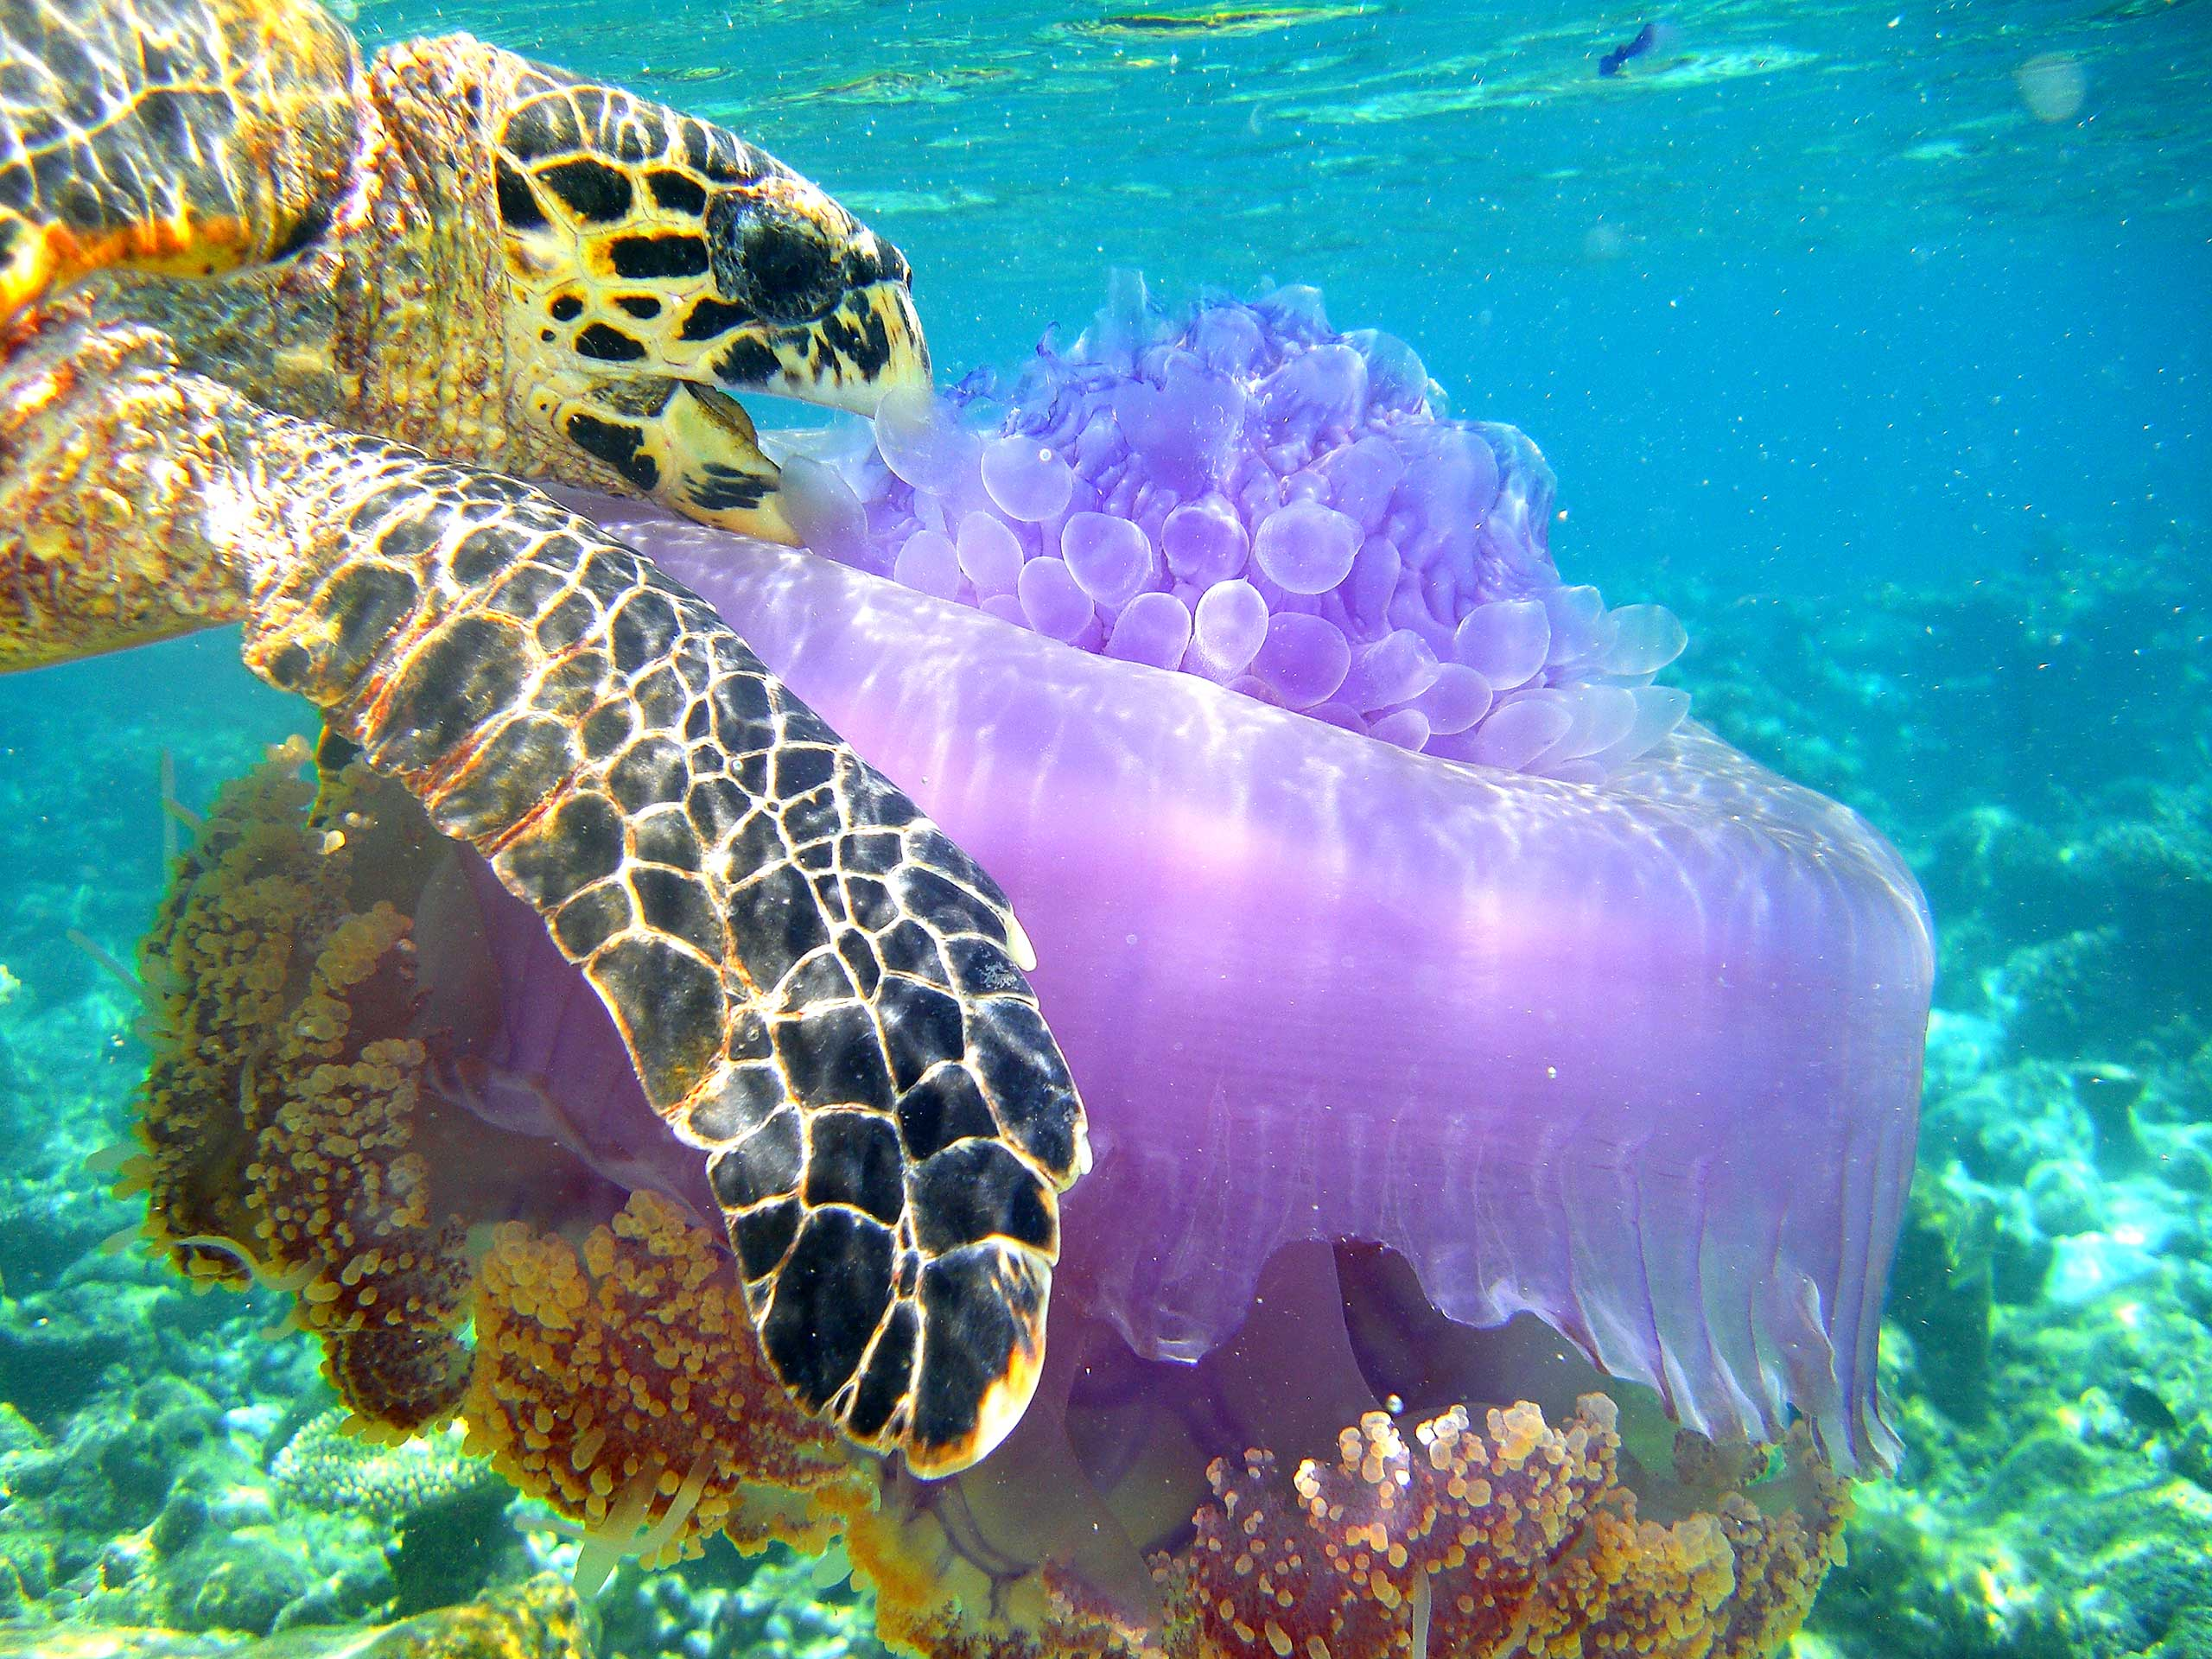 A sea turtle eating a jellyfish in The Maldives.